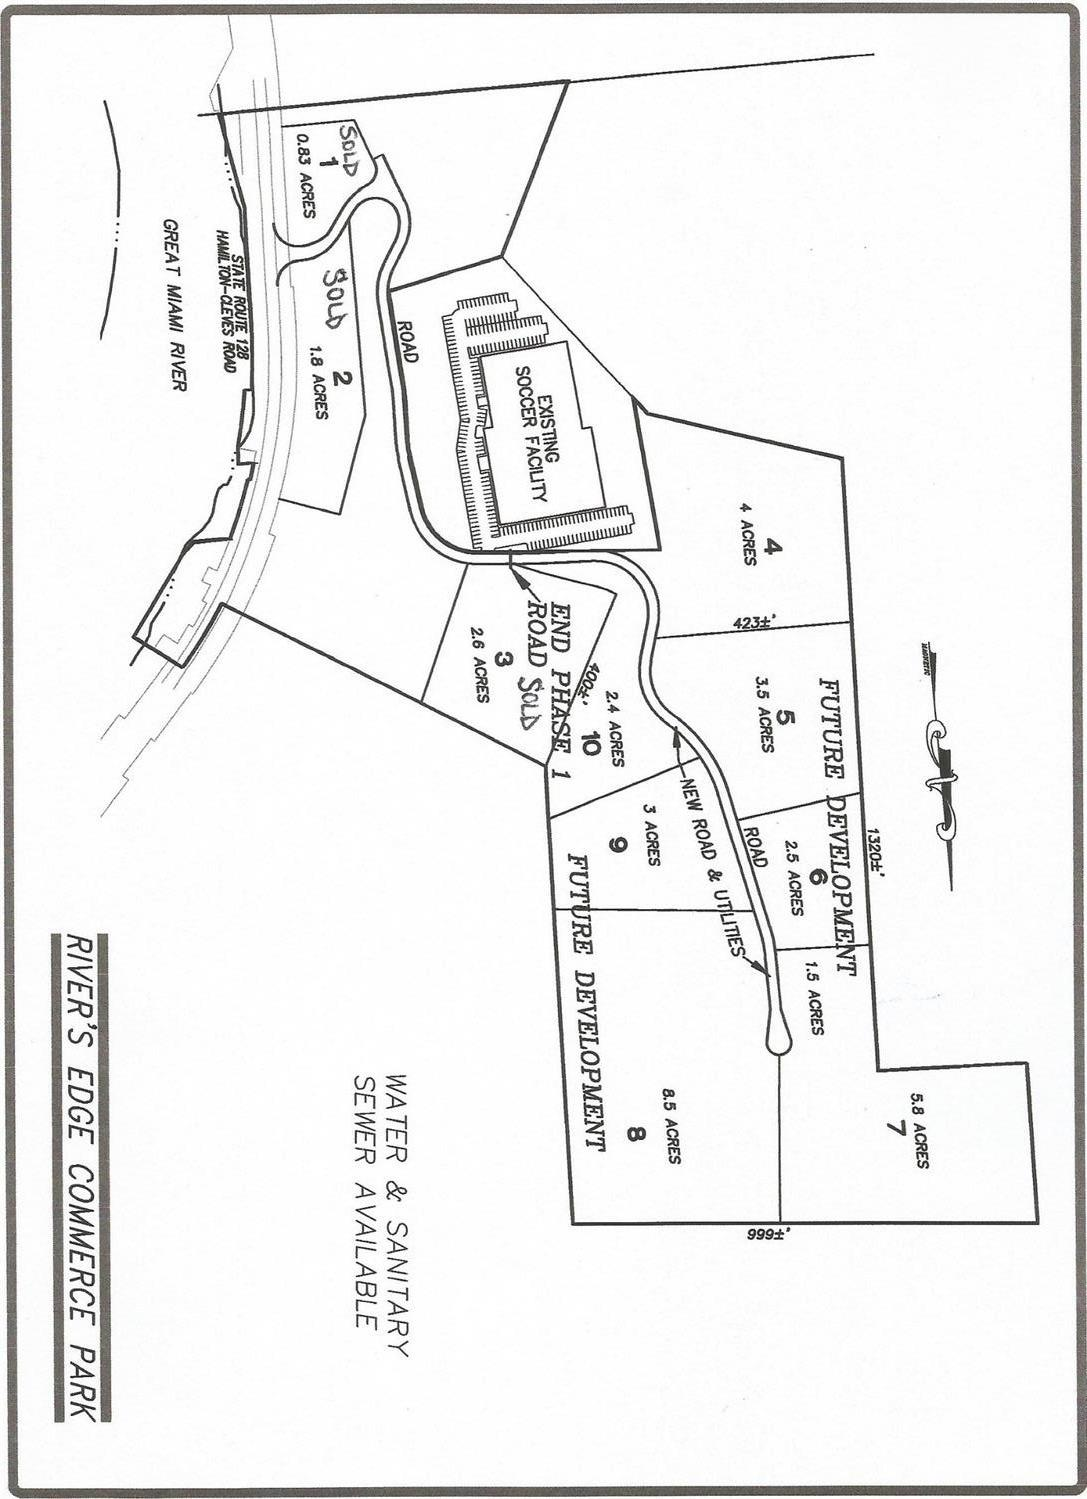 5235 Hamilton Cleves Pike Whitewater Twp., OH